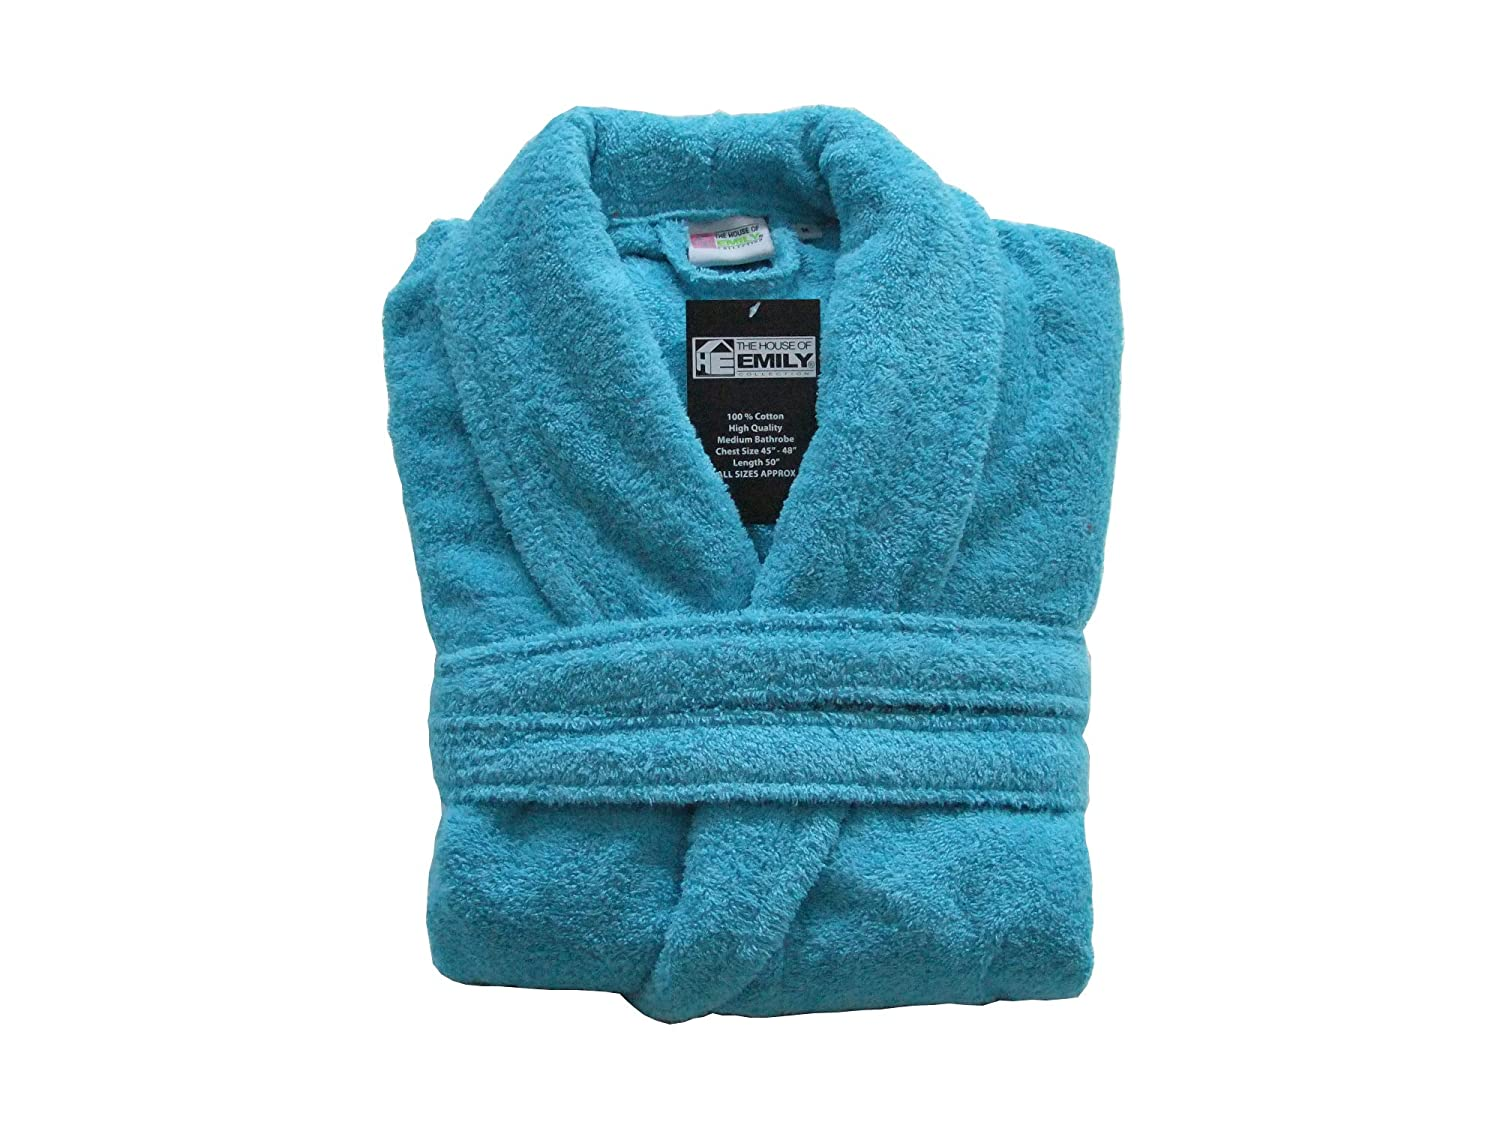 67d71c240f Amazon.com  100% Cotton Terry Towelling Bathrobe Bath Robe + Matching Belt  - Medium   Chest Size 45 - 48 (Aqua) by The House Of Emily  Home   Kitchen